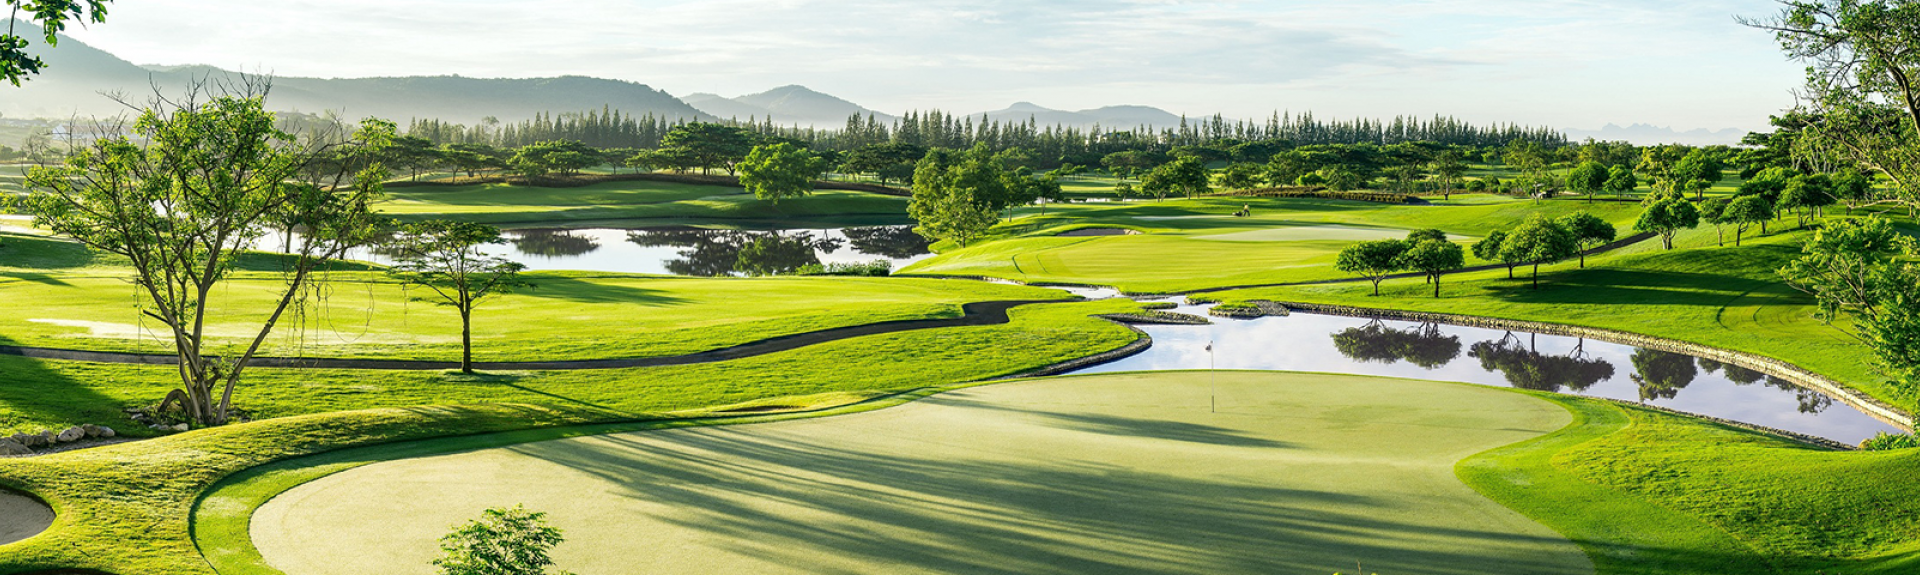 Black Mountain Golf Hua Hin overview